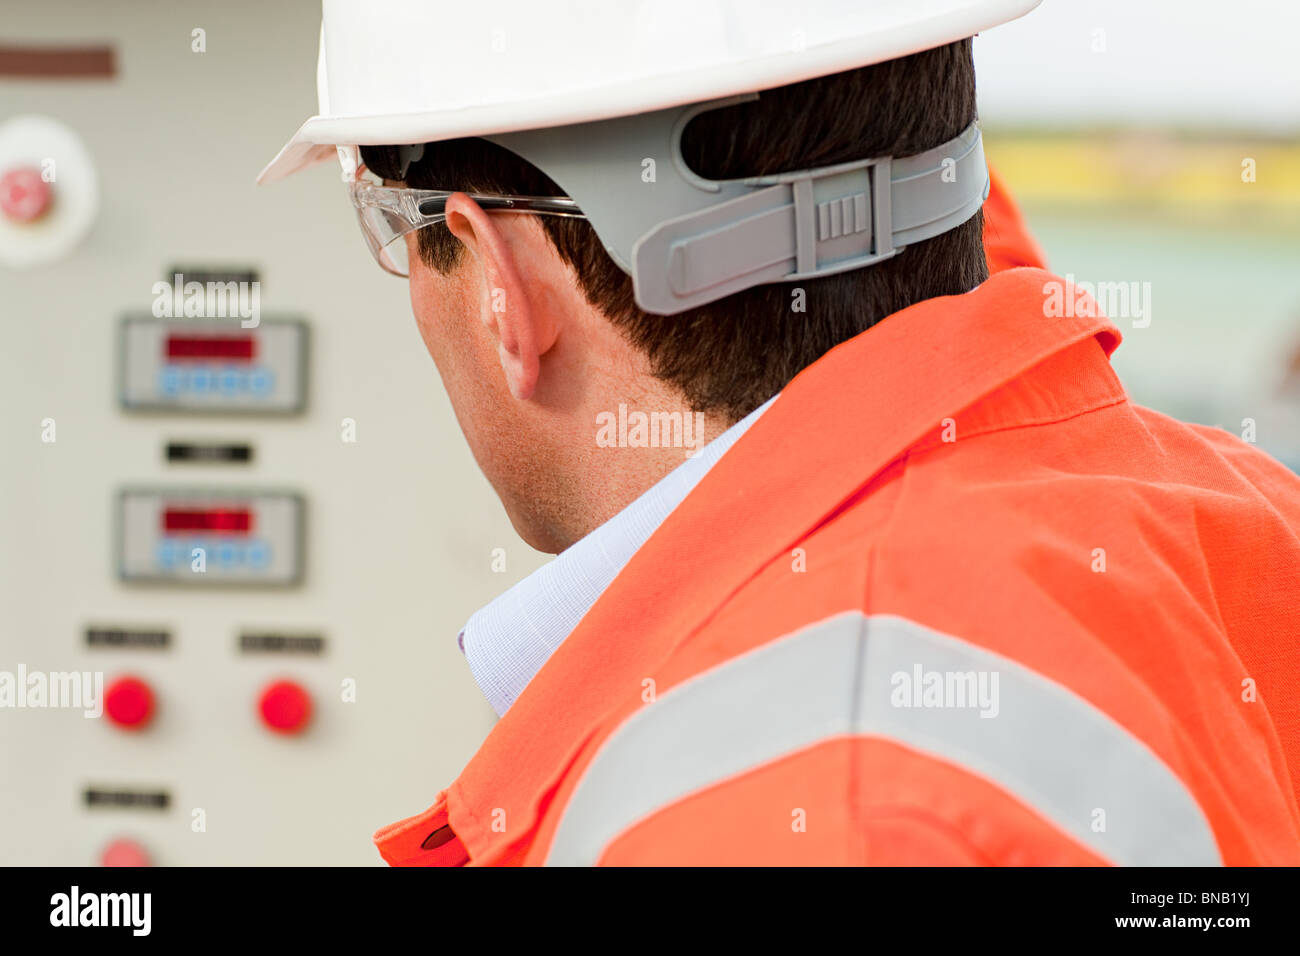 Engineer looking at control panel - Stock Image